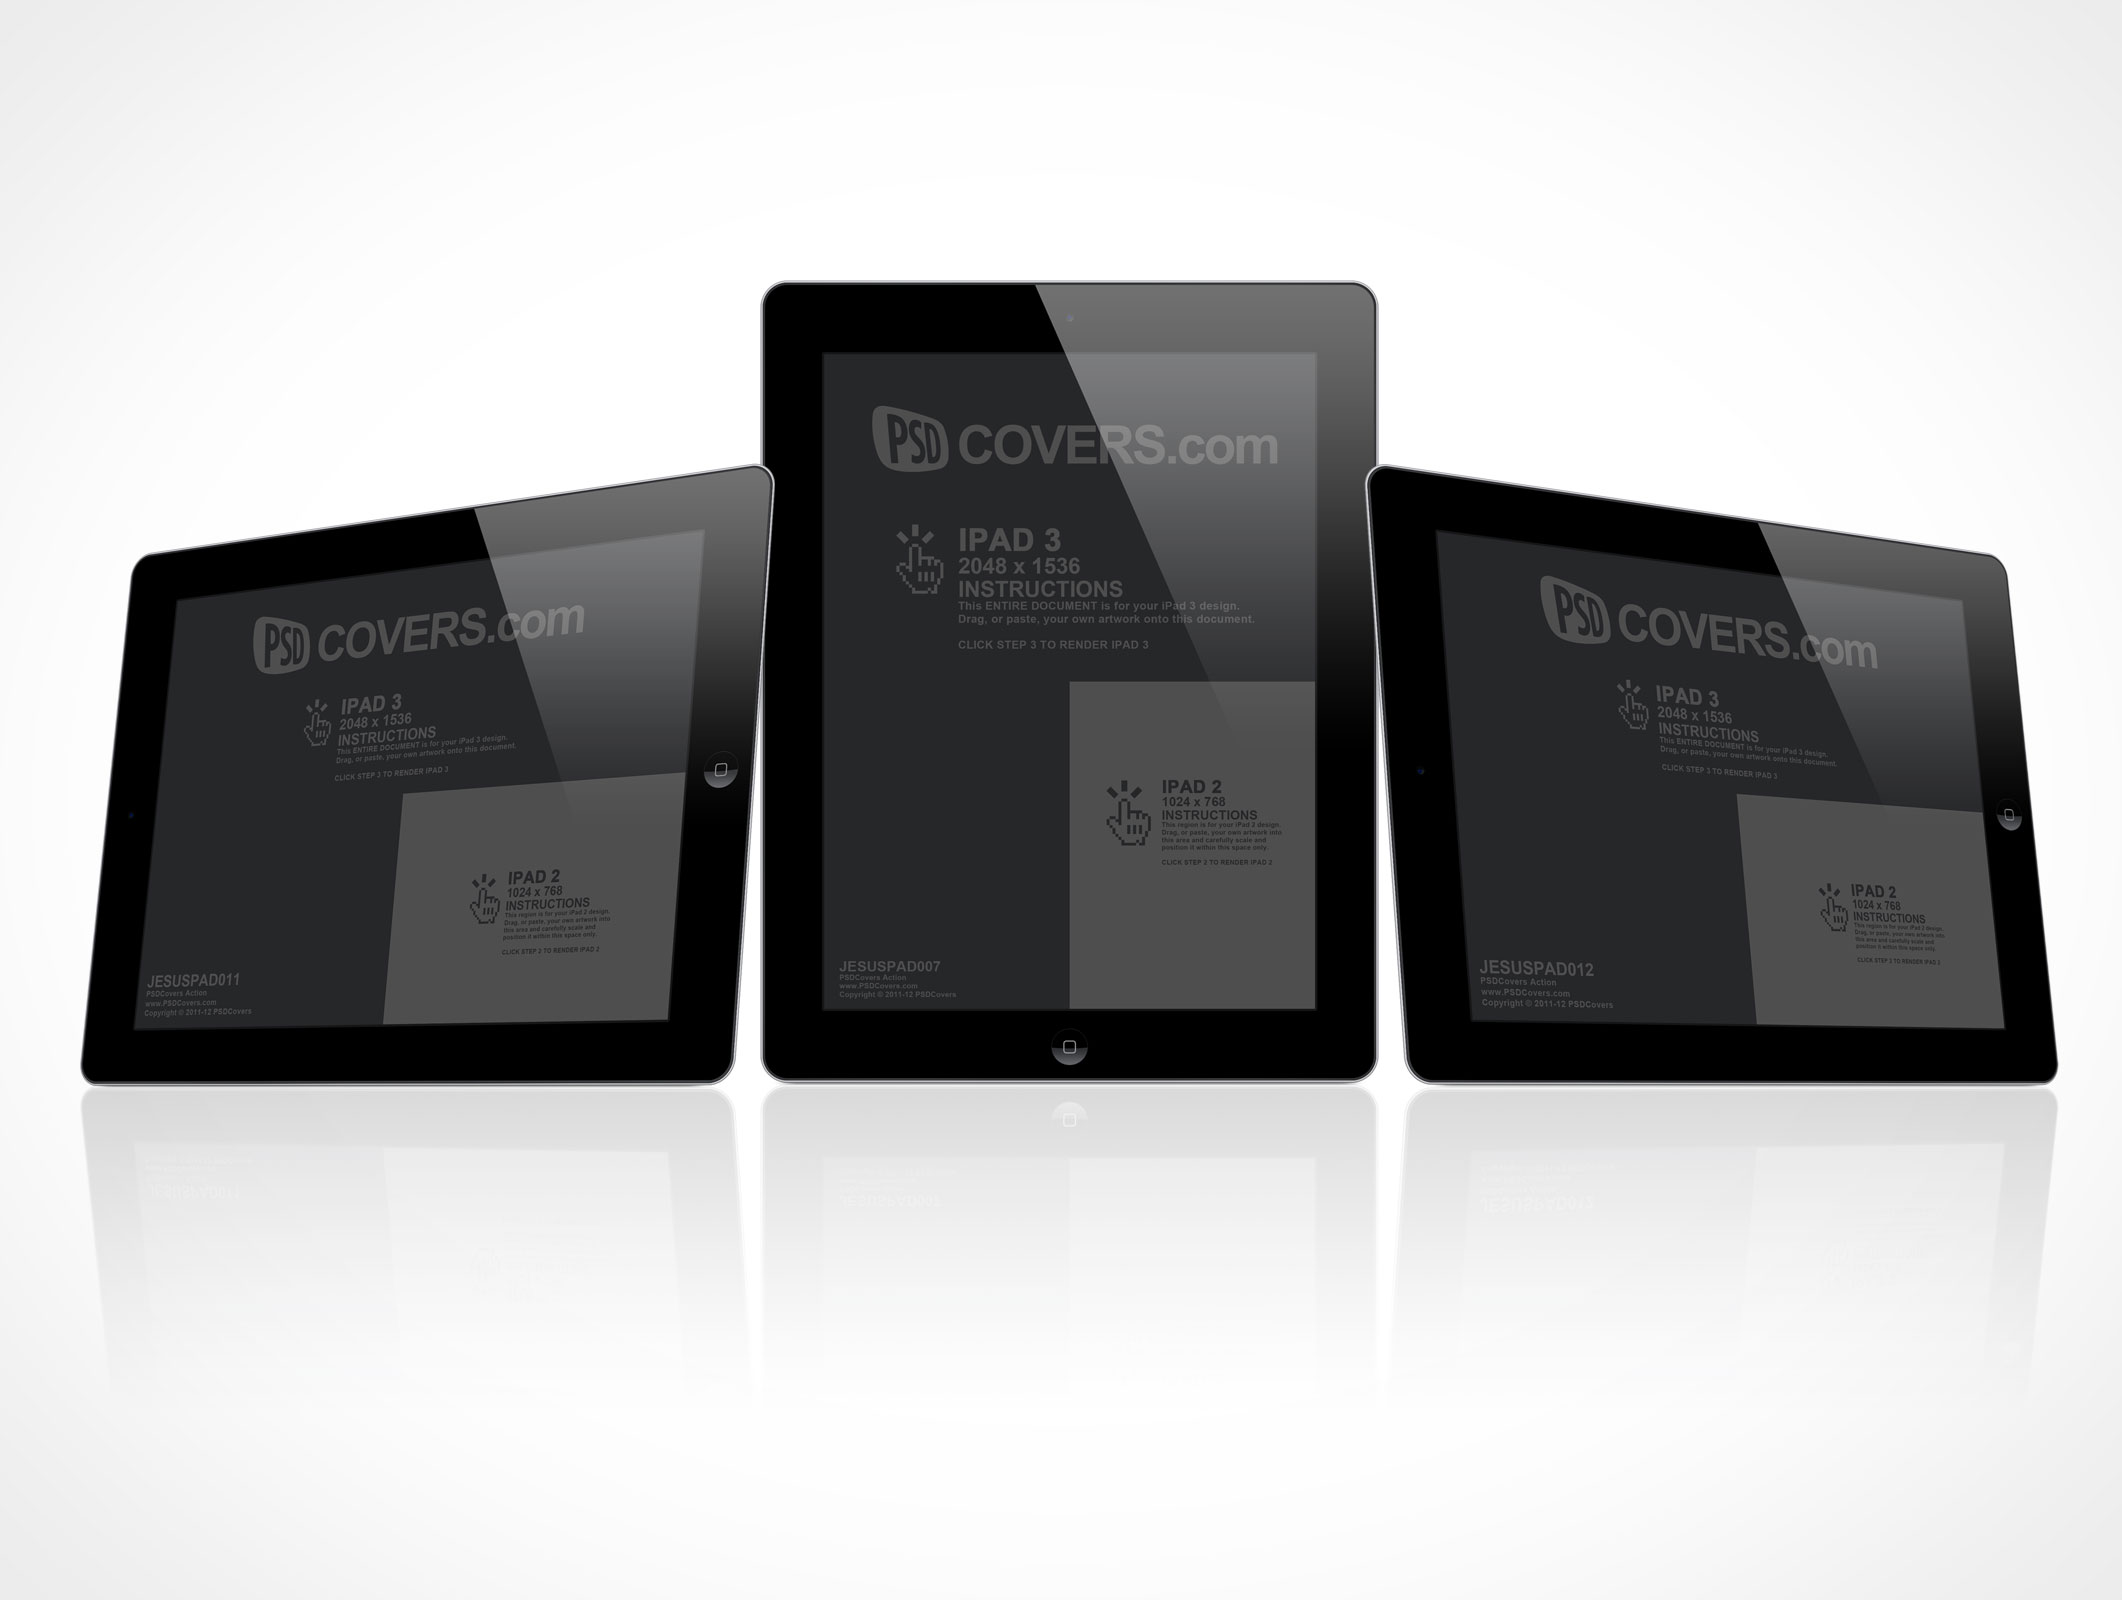 the new apple multi-touch retina display ipad 3 psd cover action, Powerpoint templates